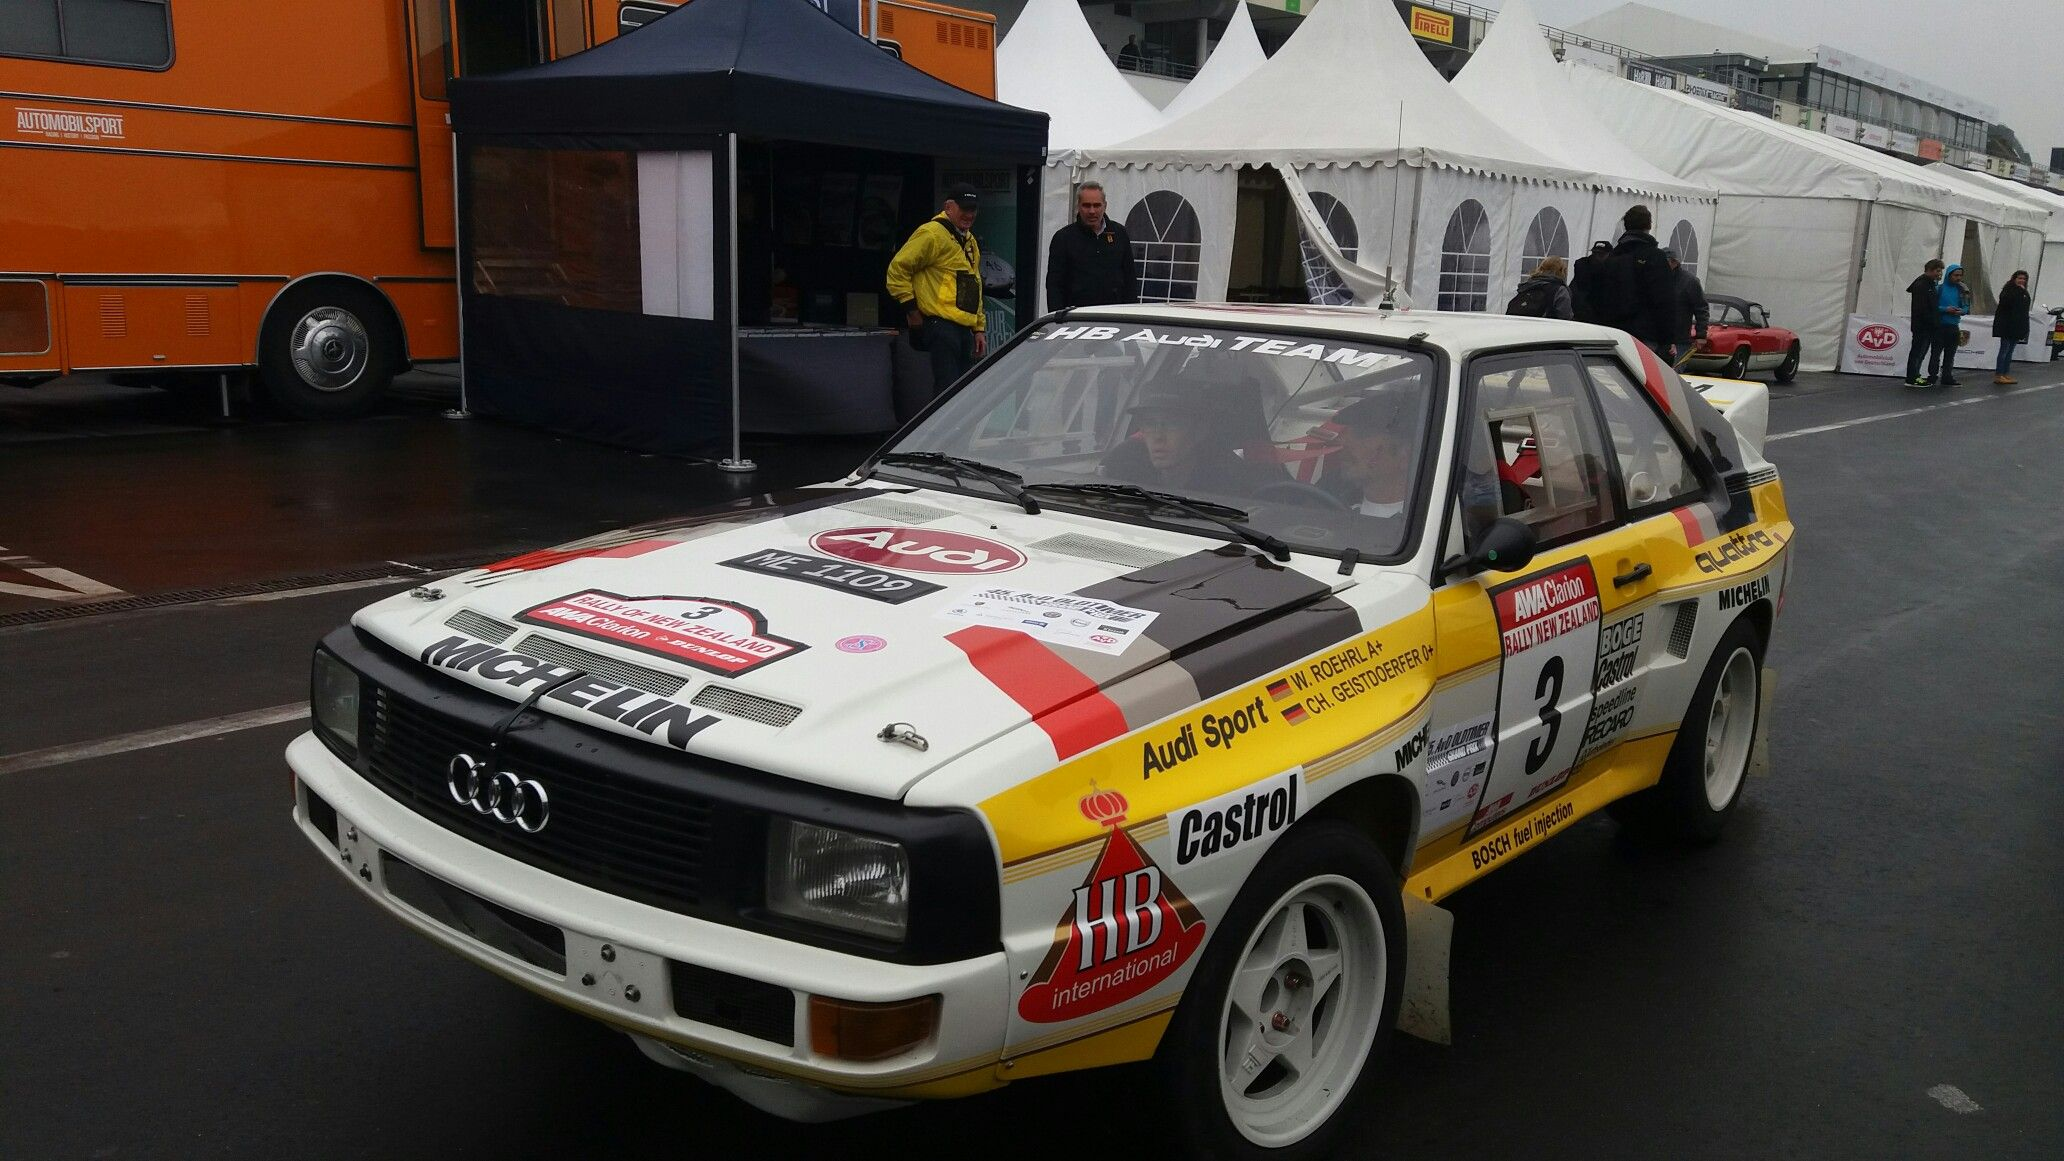 Audi Sport Quattro Rally New Zealand / Histo Cup Nürburgring 2017